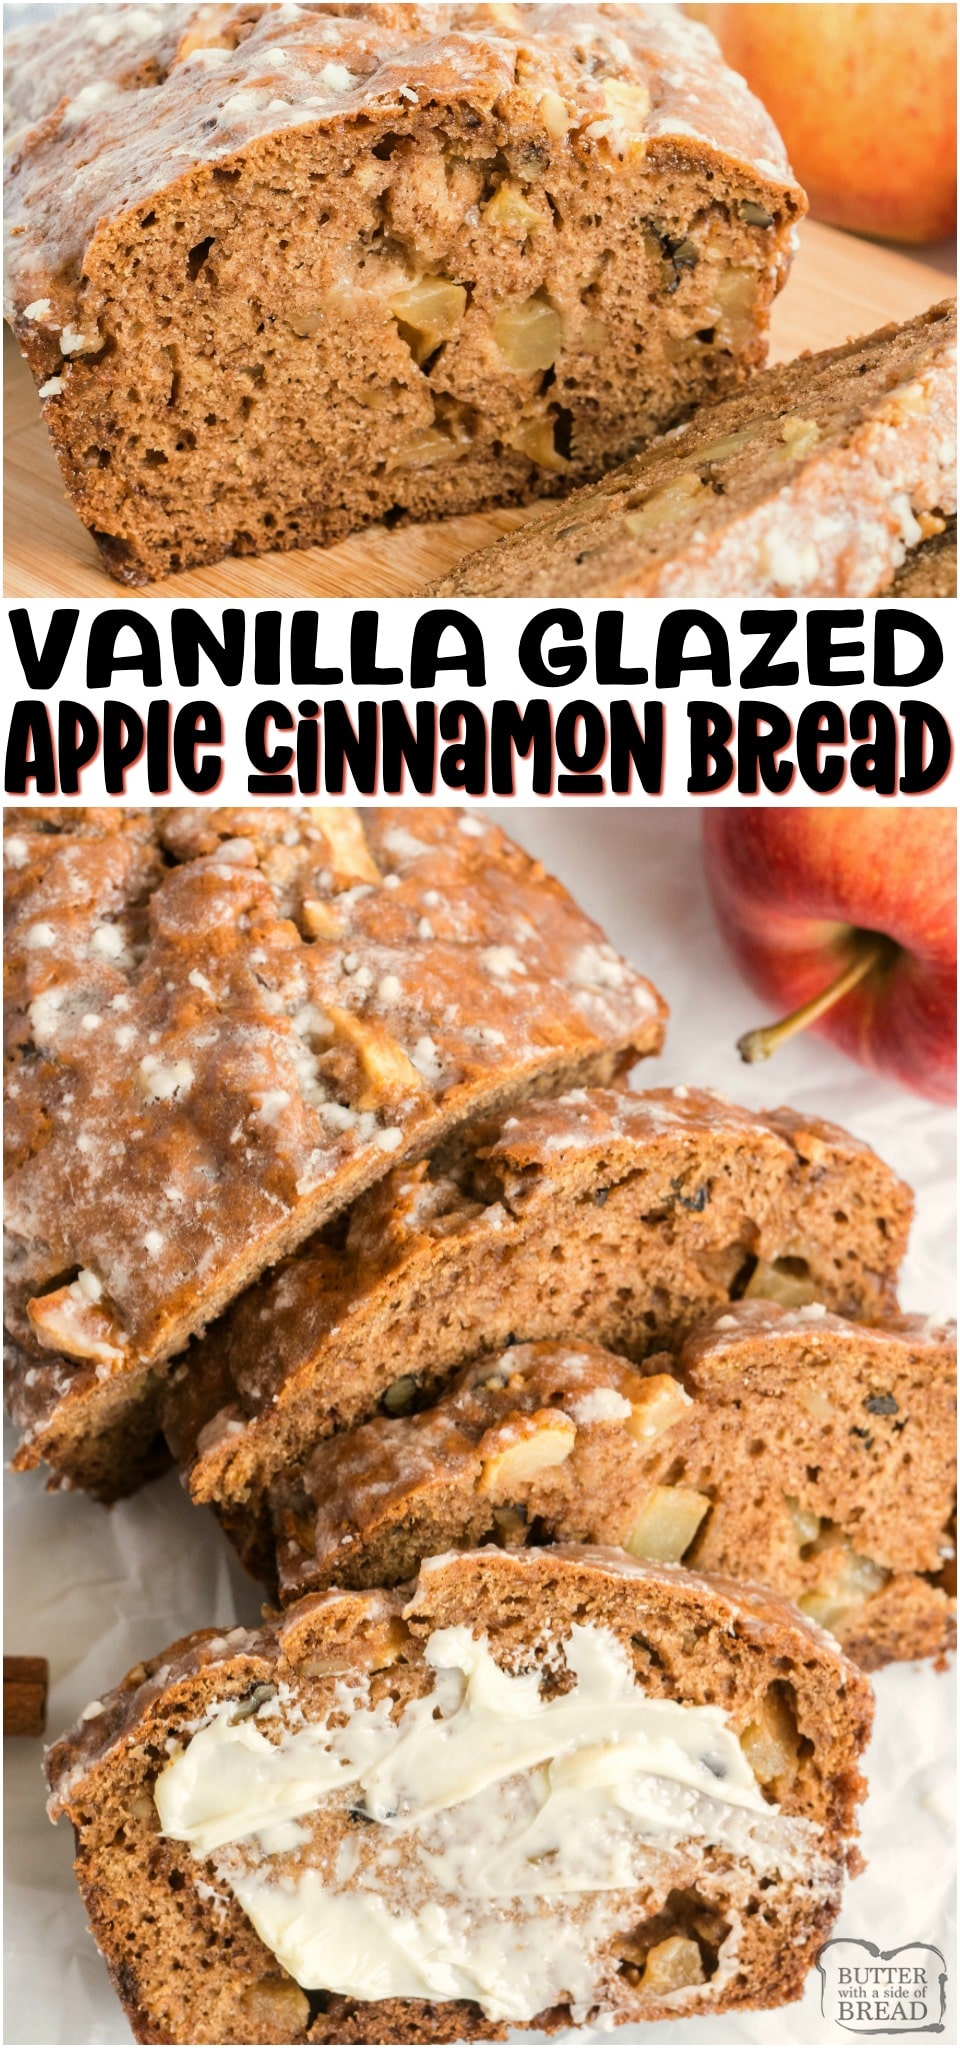 Glazed Apple Cinnamon bread made with fresh apple, cinnamon & brown sugar, then topped with a simple vanilla glaze. Easy quick bread recipe with fantastic apple cinnamon flavor. #bread #quickbread #baking #apples #applecinnamon #fall #homemade #sweetbread #recipe from BUTTER WITH A SIDE OF BREAD